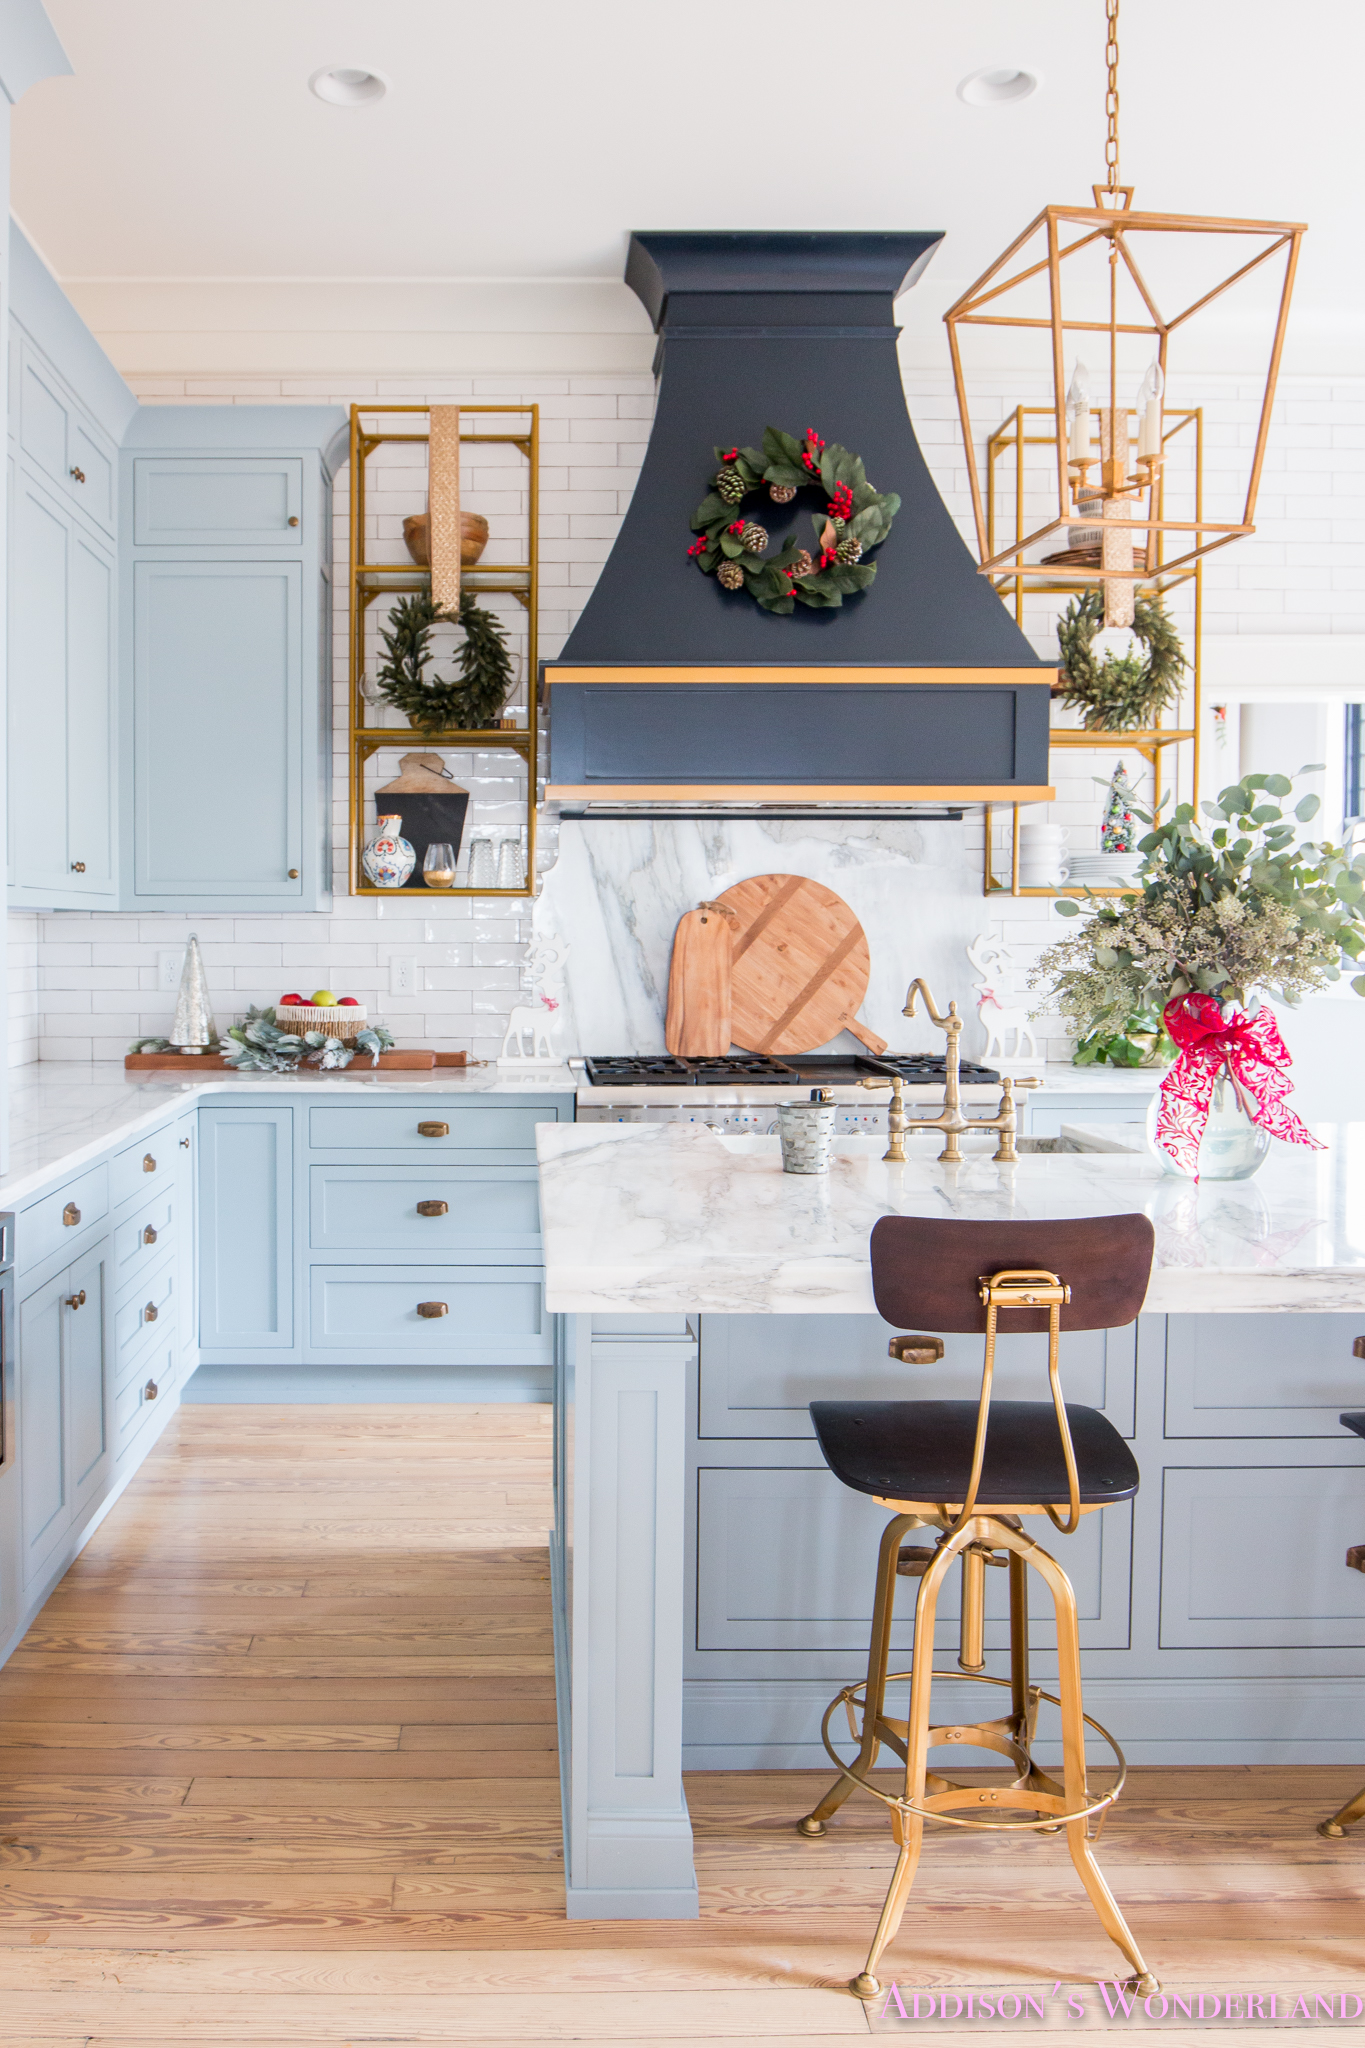 black chairs target costco beach backpack inside our vintage modern style holiday kitchen...